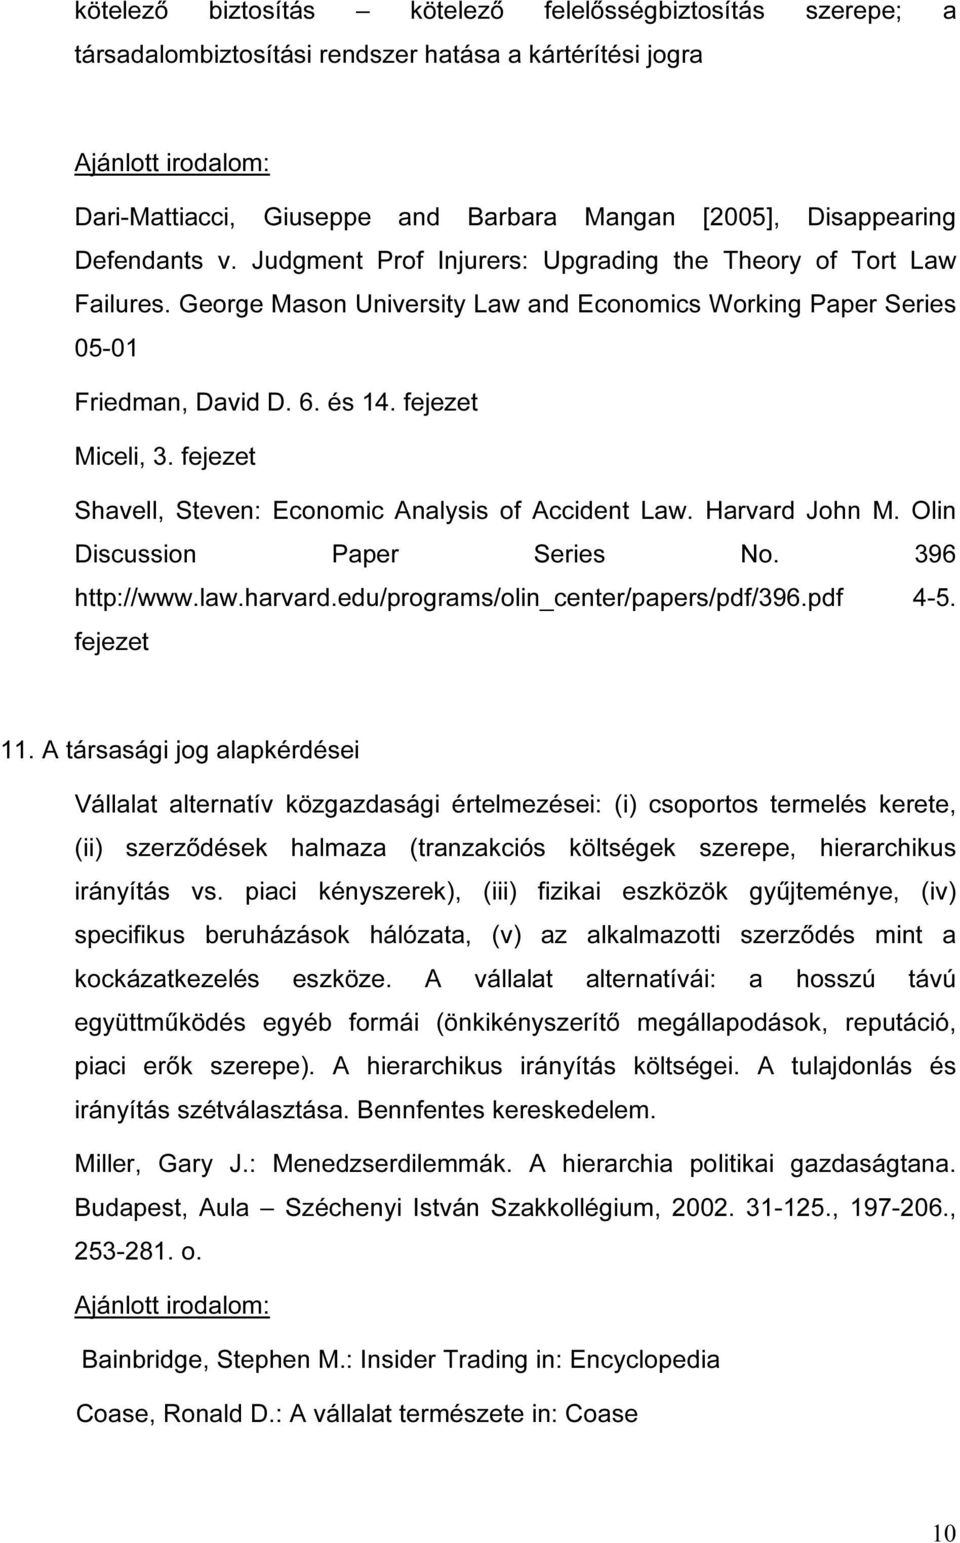 fejezet Shavell, Steven: Economic Analysis of Accident Law. Harvard John M. Olin Discussion Paper Series No. 396 http://www.law.harvard.edu/programs/olin_center/papers/pdf/396.pdf 4-5. fejezet 11.